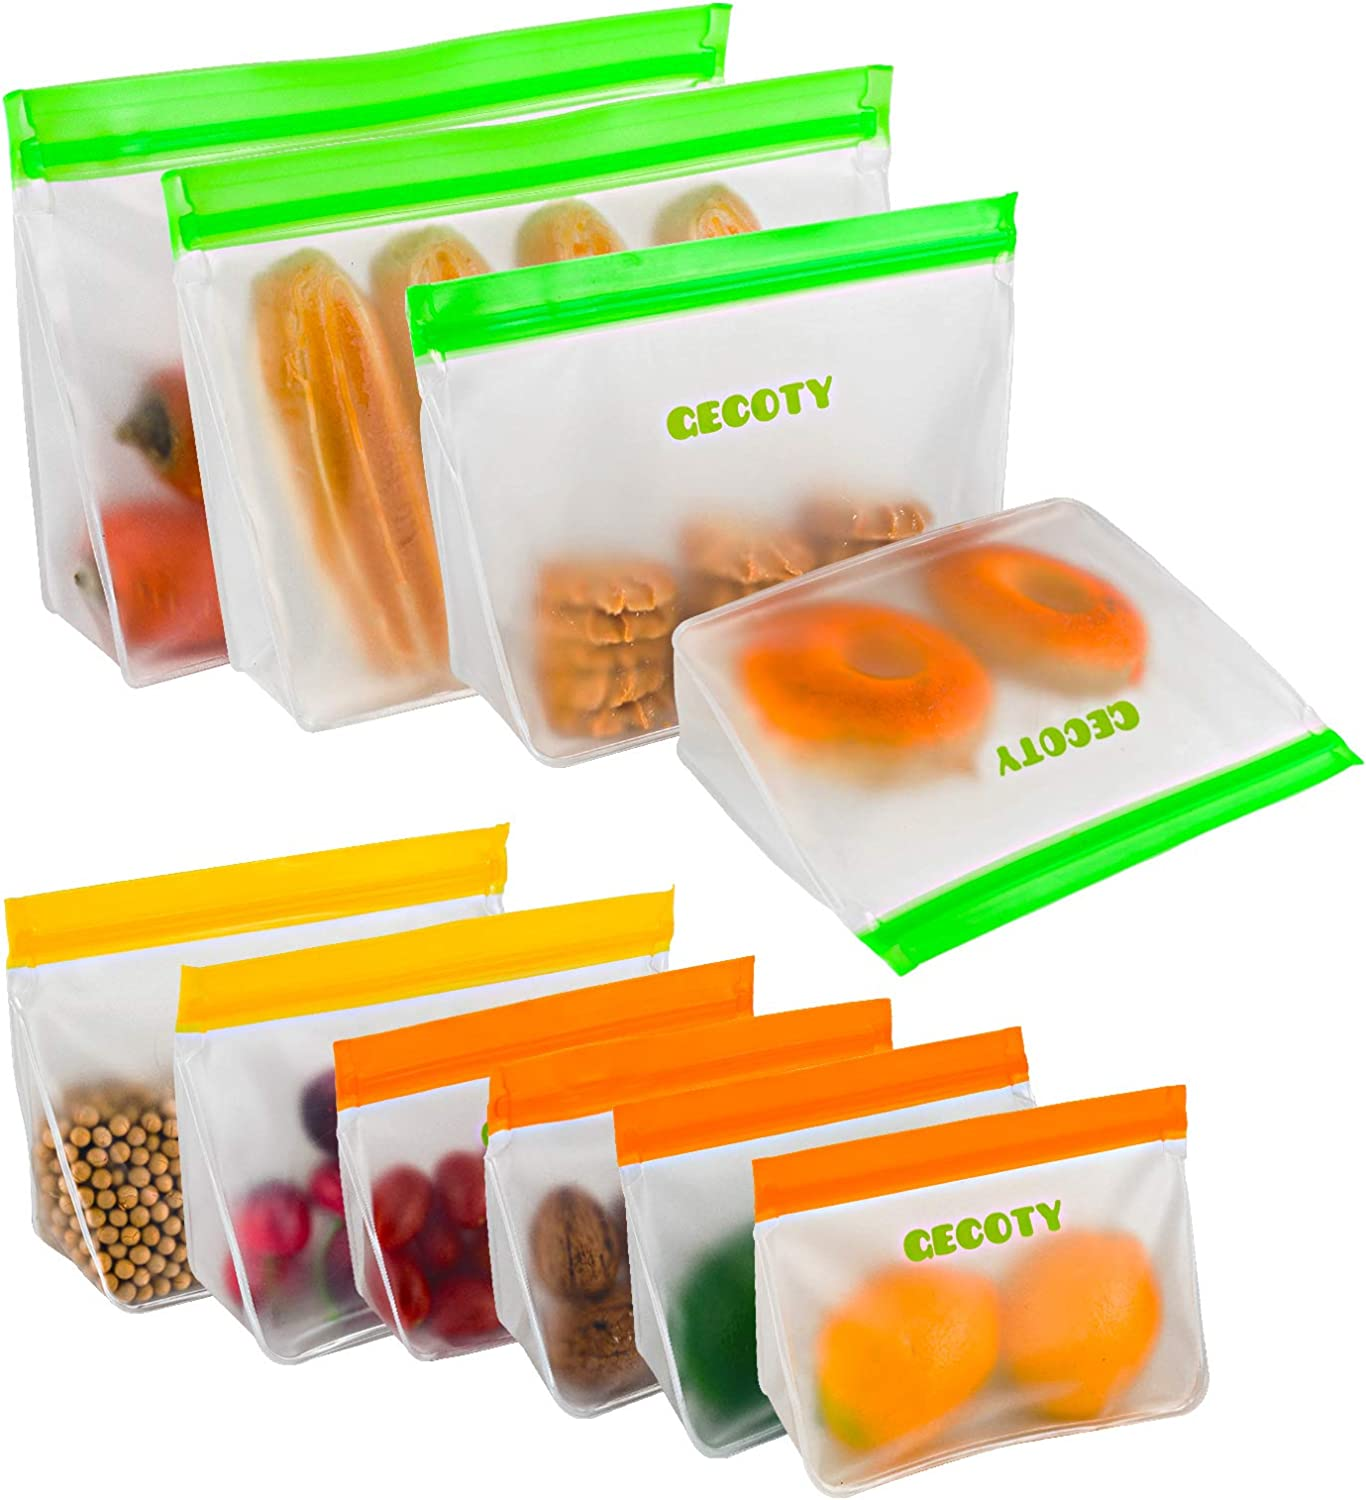 Reusable Storage Bags,GECOTY Upgraded [10-Pack] Reusable Food Bags BPA-free,Ziplock Bag Eco-Friendly,Leak-proof Freezer Bags Sandwich Bags-Stand up Large/Medium/Small for Refrigerator Storage